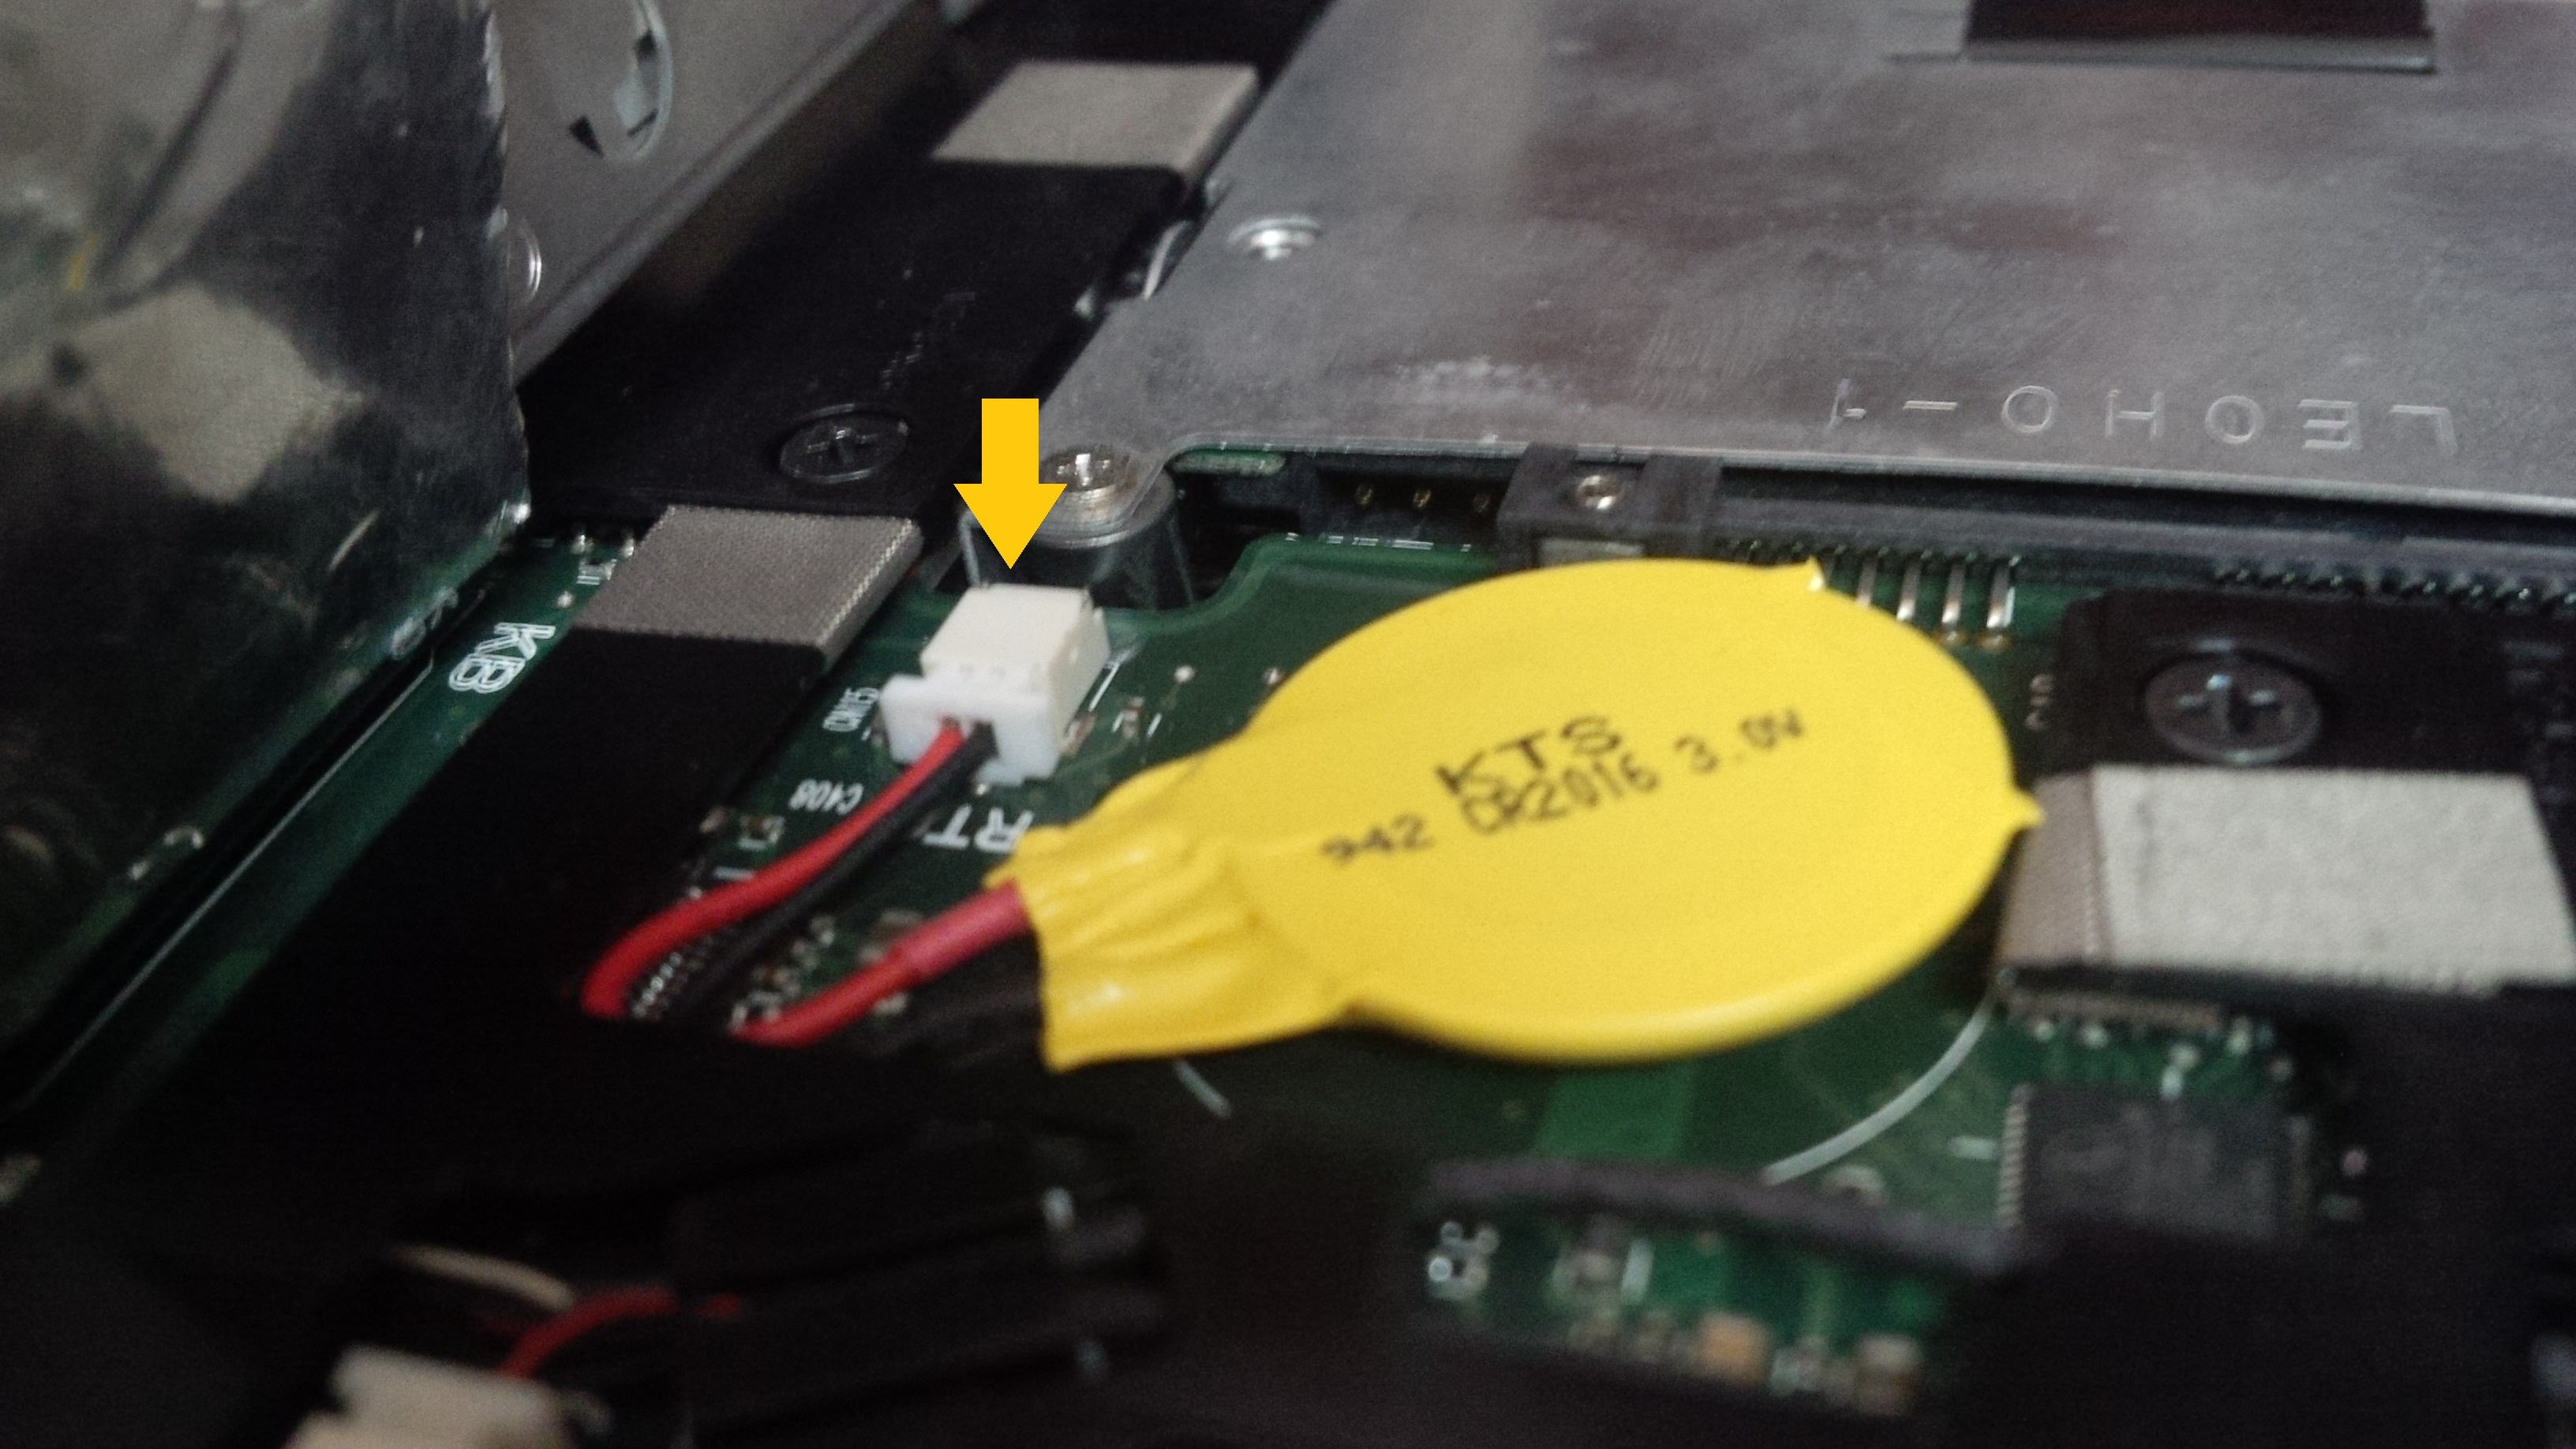 Make Your Own Cmos Rtc Battery Dragon Fixes Baterai Labtop Cr 2032 Kabel Img 00000192 V1